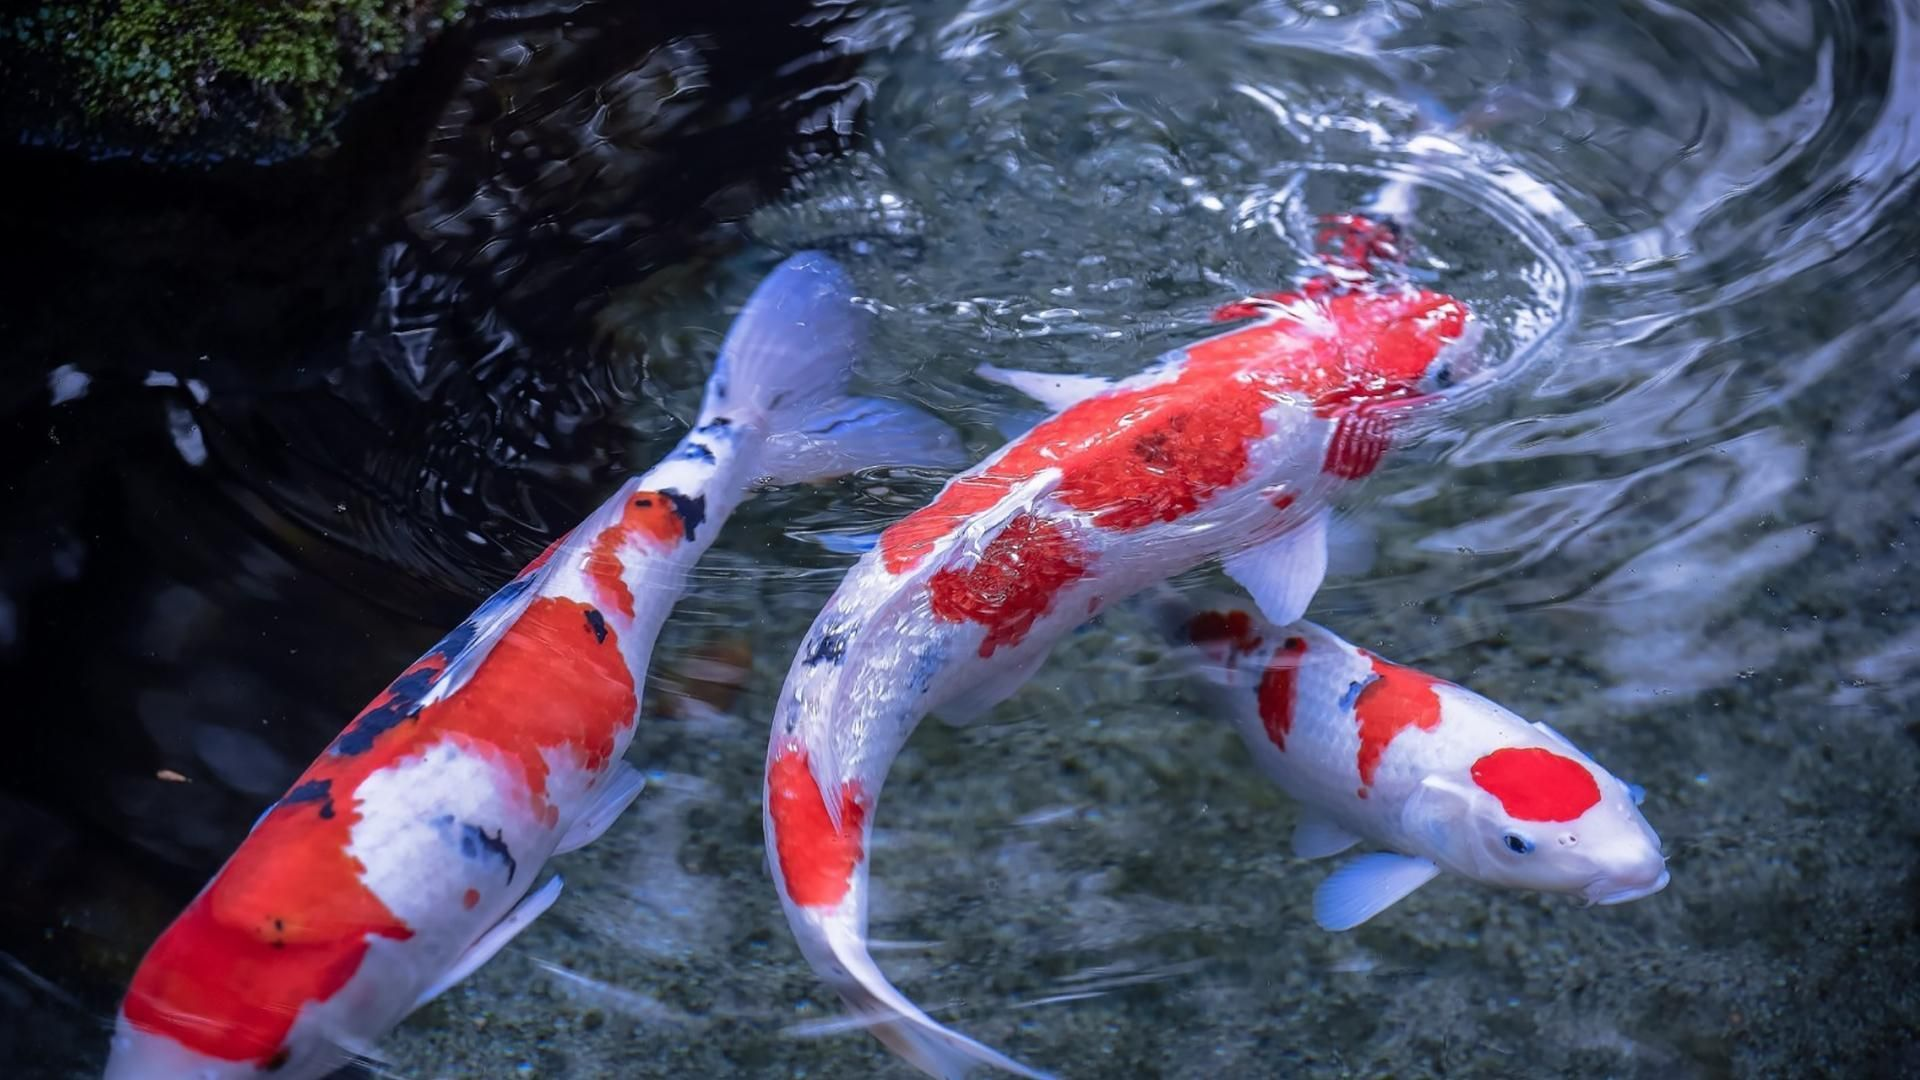 Japanese Koi Fish Pond Wallpapers Top Free Japanese Koi Fish Pond Backgrounds Wallpaperaccess